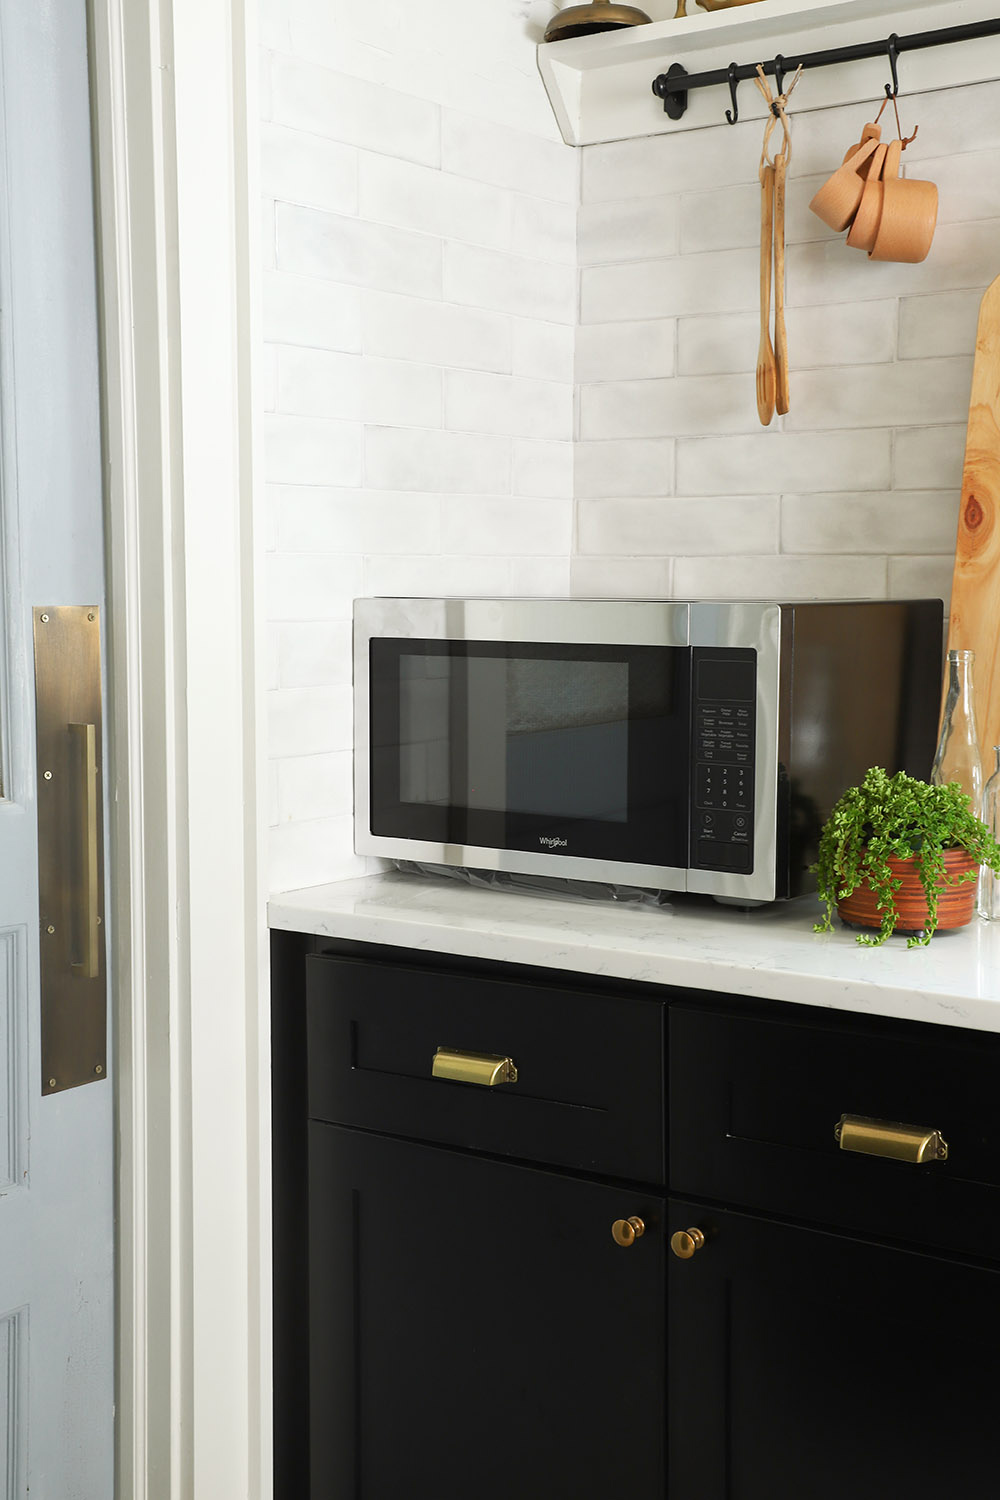 A stainless steel countertop microwave sits in the corner of a kitchen.